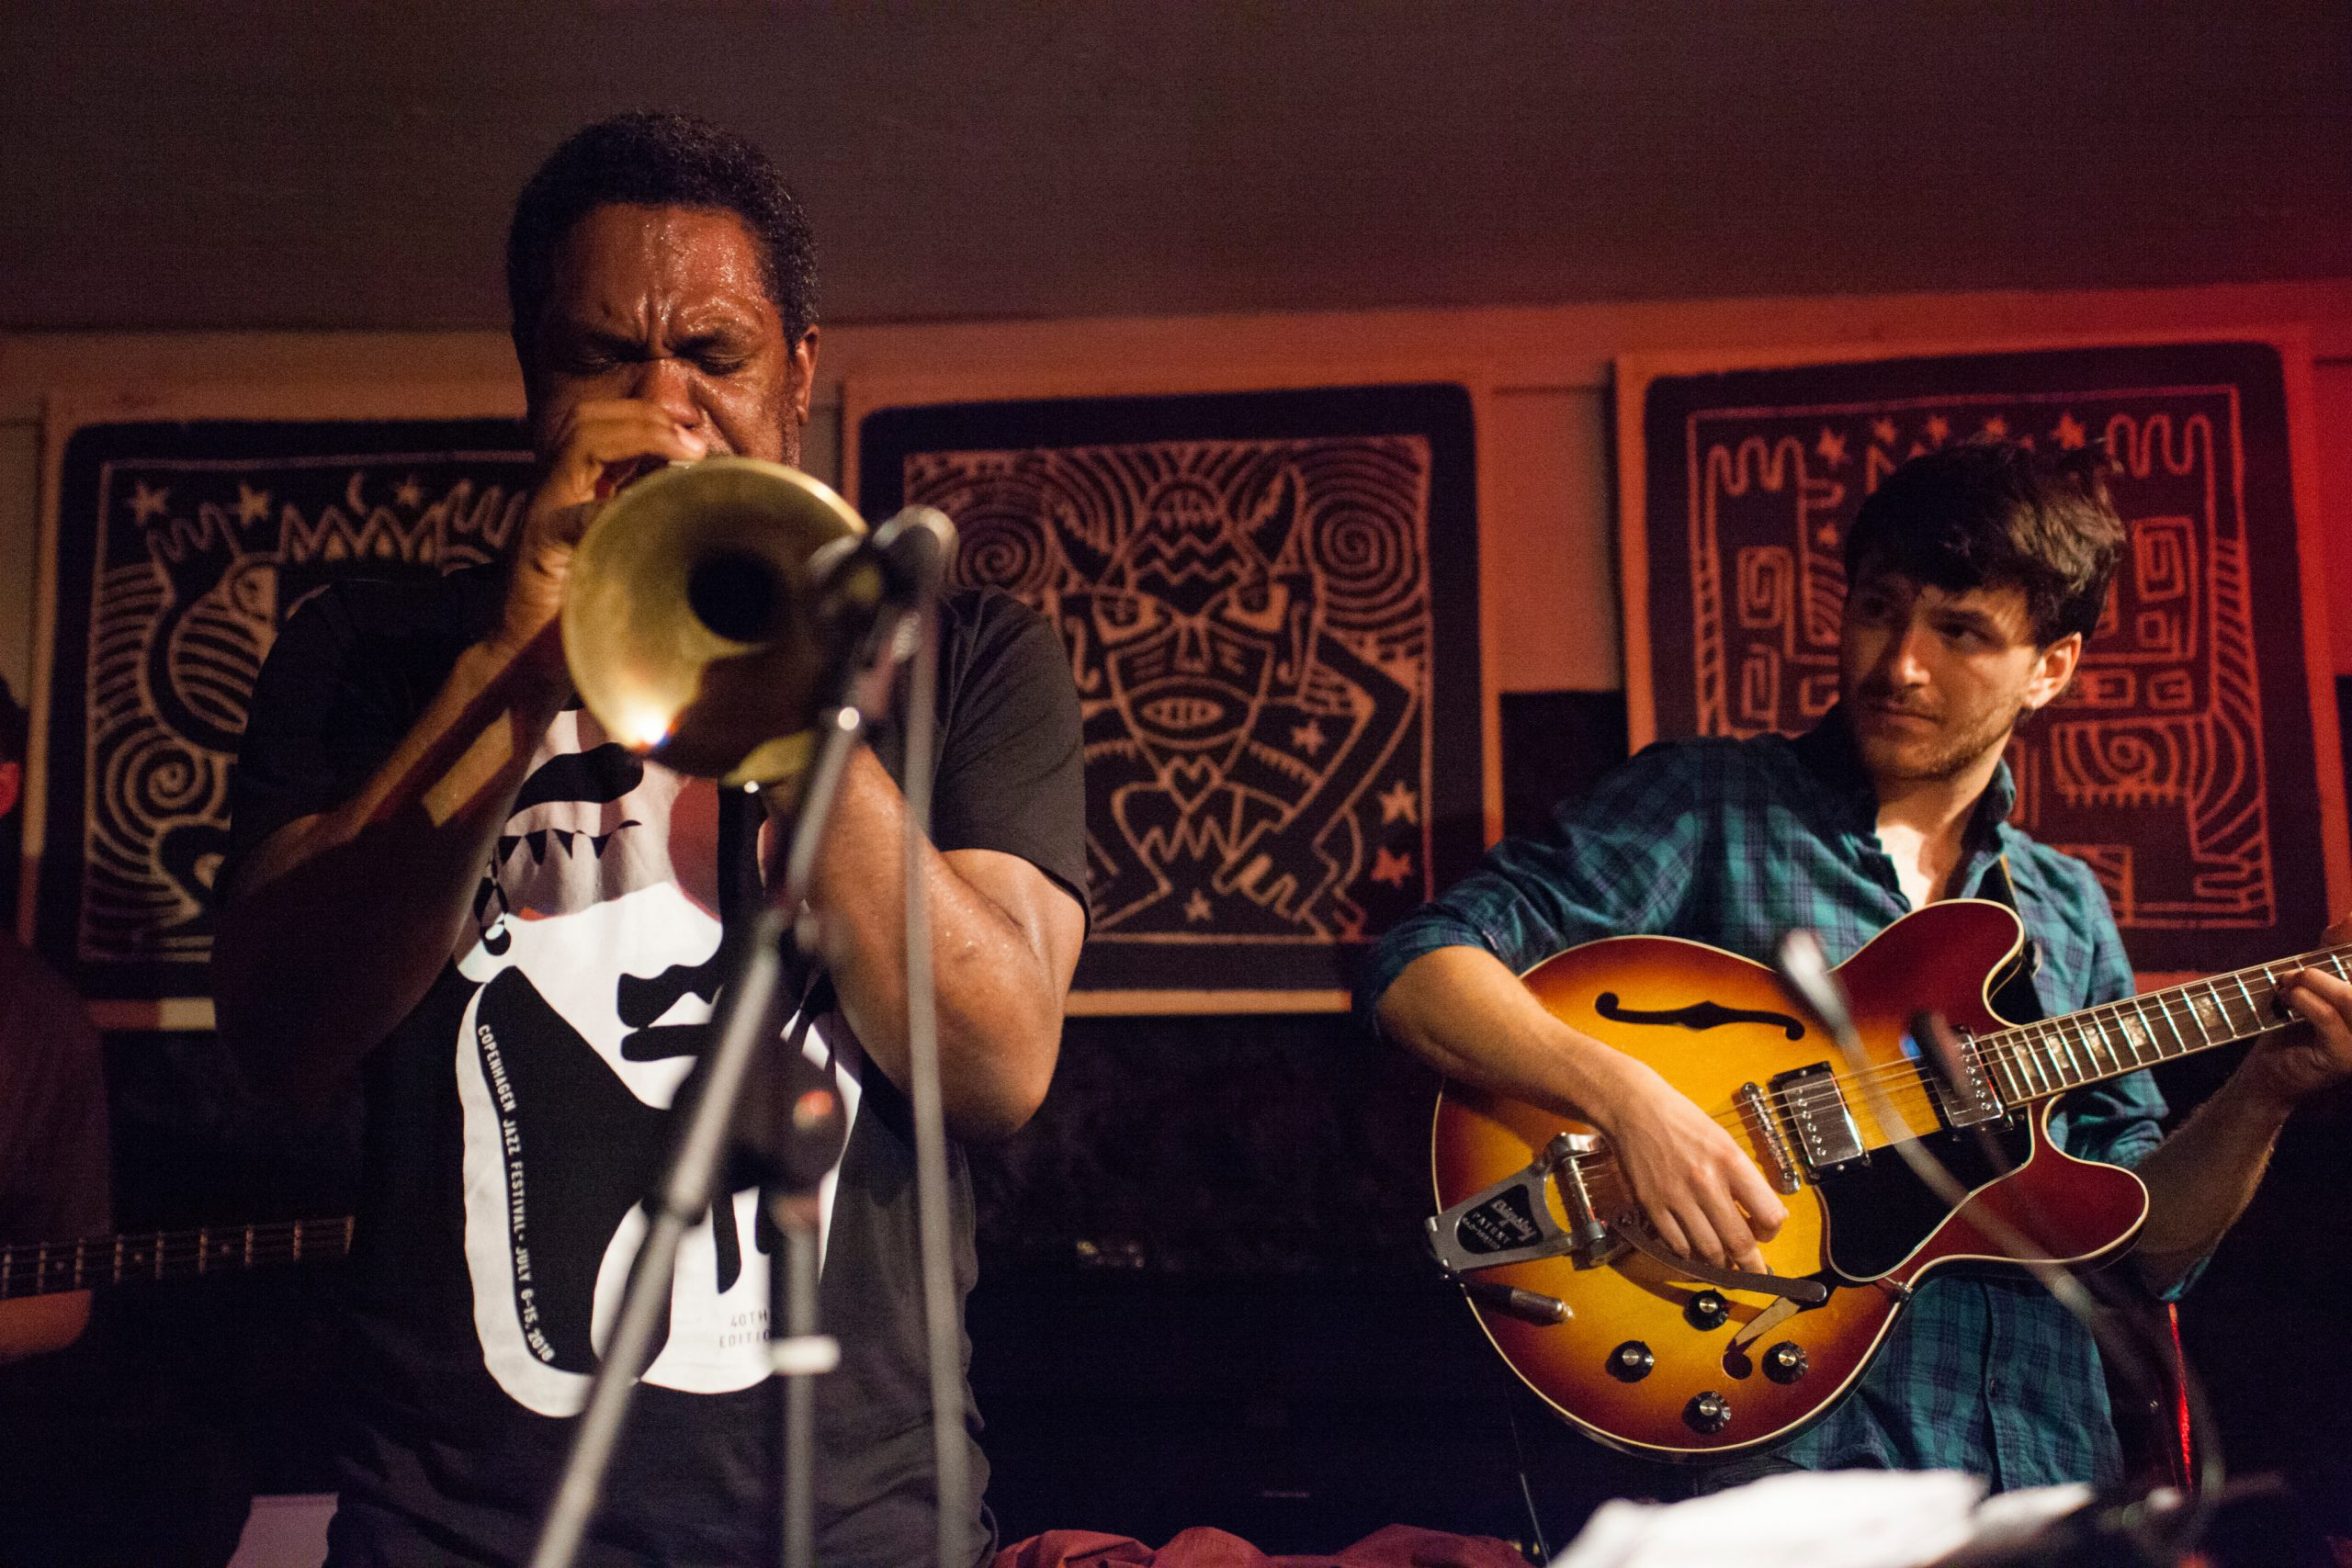 Trumpet Player and Guitar Player at The Crypt